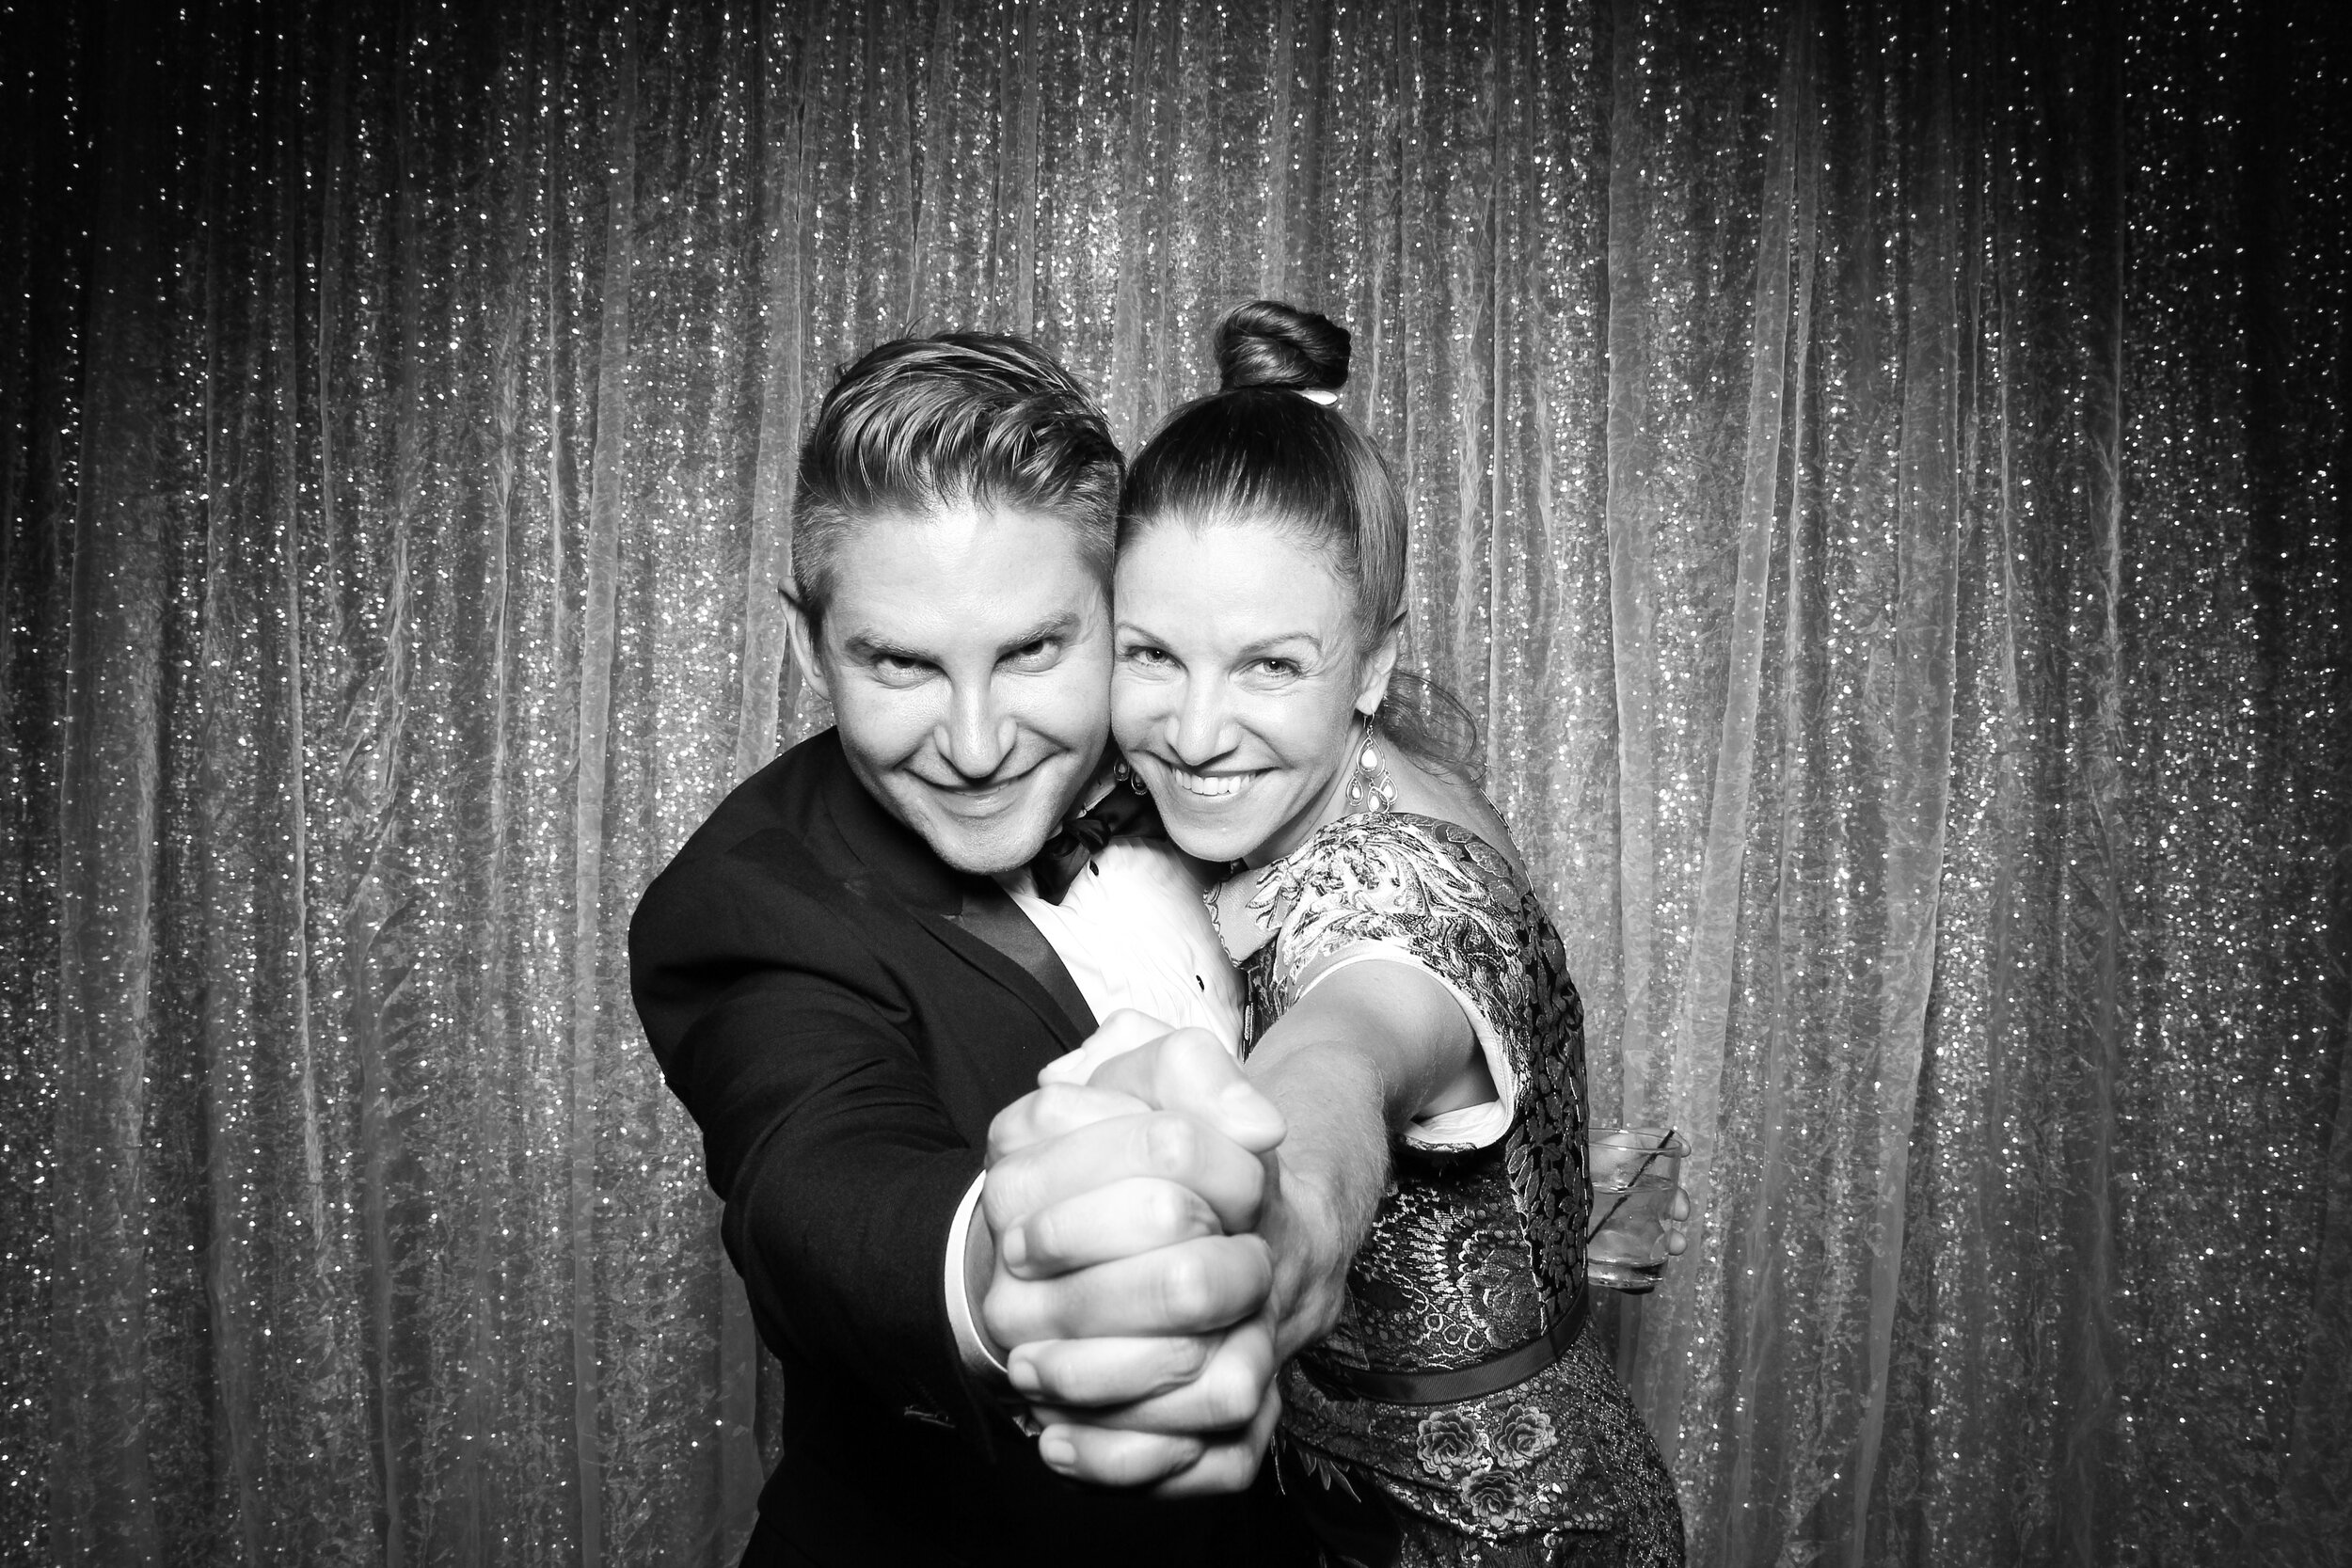 Chicago_Vintage_Wedding_Photobooth_Country_Club_14.jpg